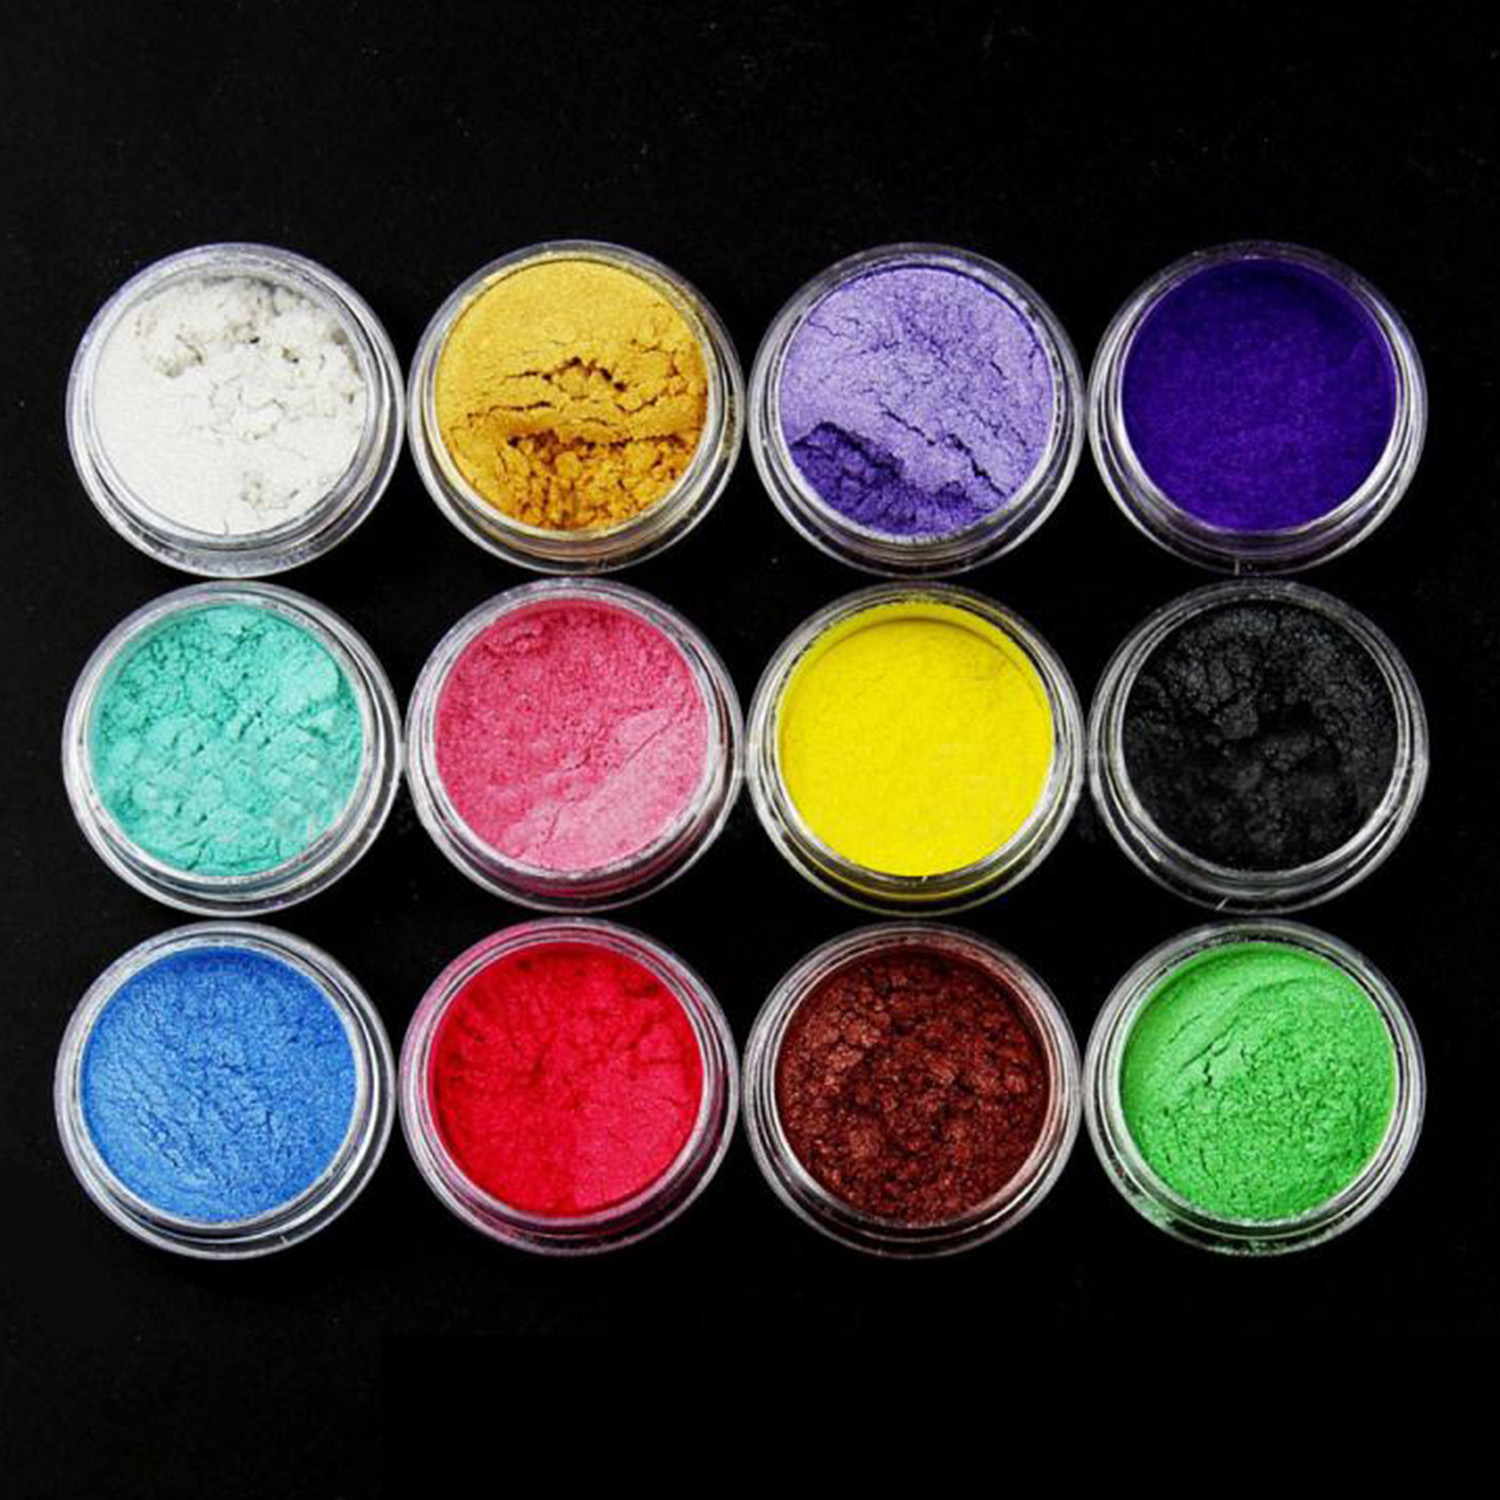 12pcs Mixed Colors Colorant Pigments Mica Pearl Powder For DIY Nail Art Craft Projects Slime Making Supplies